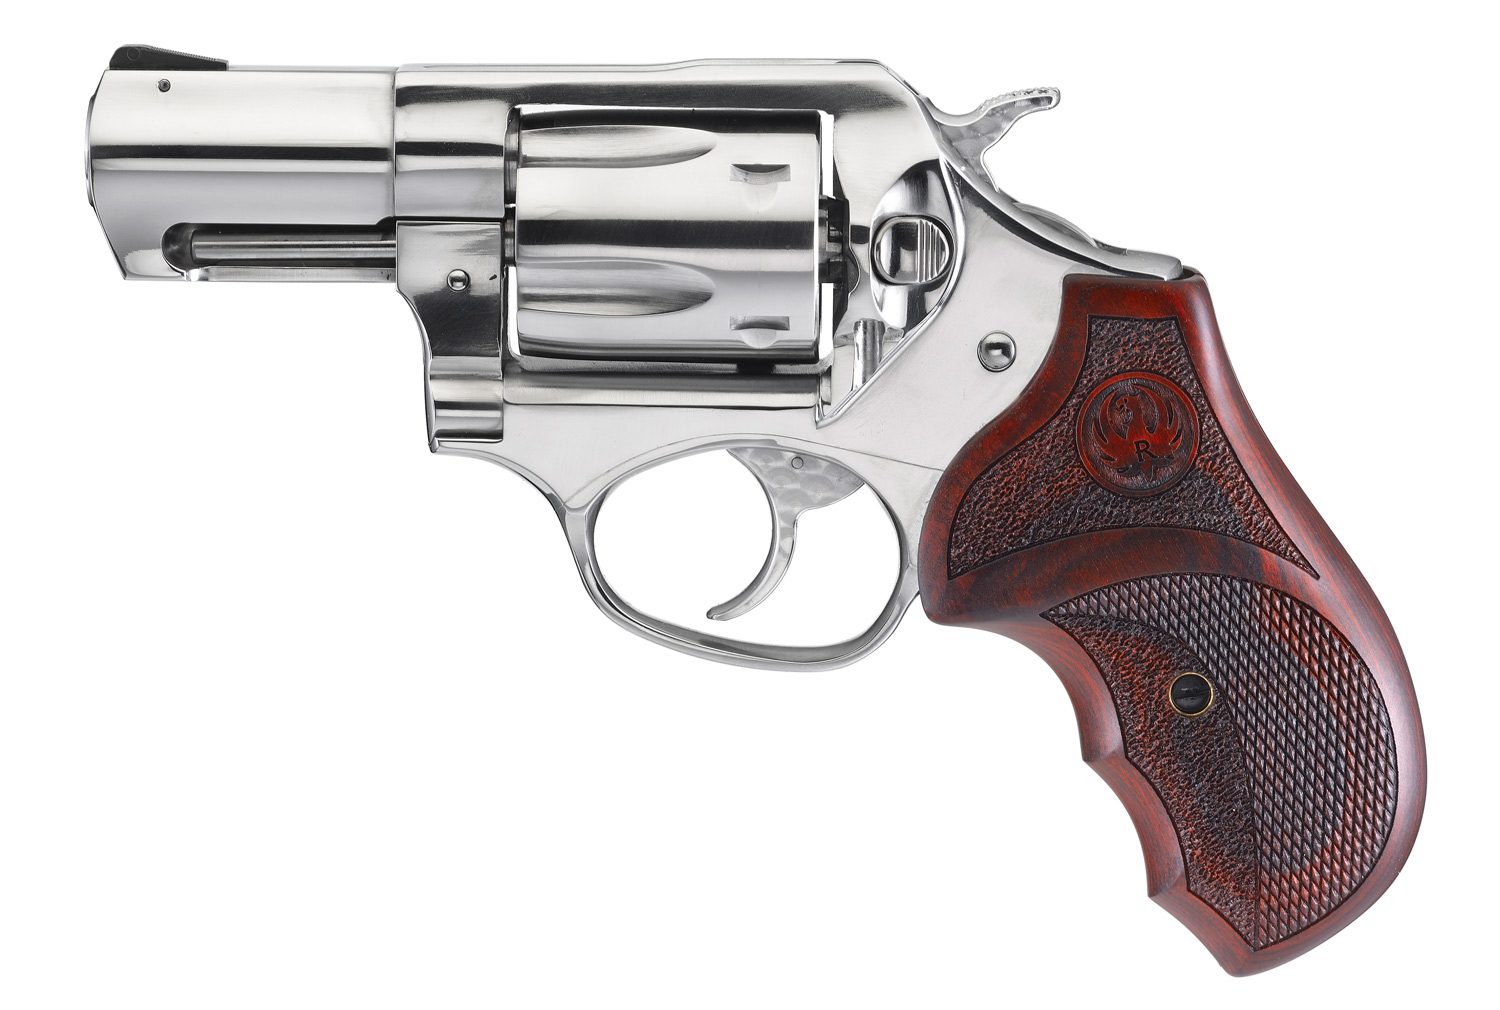 Ruger Sp101 Match Champion Double Action Revolver Model